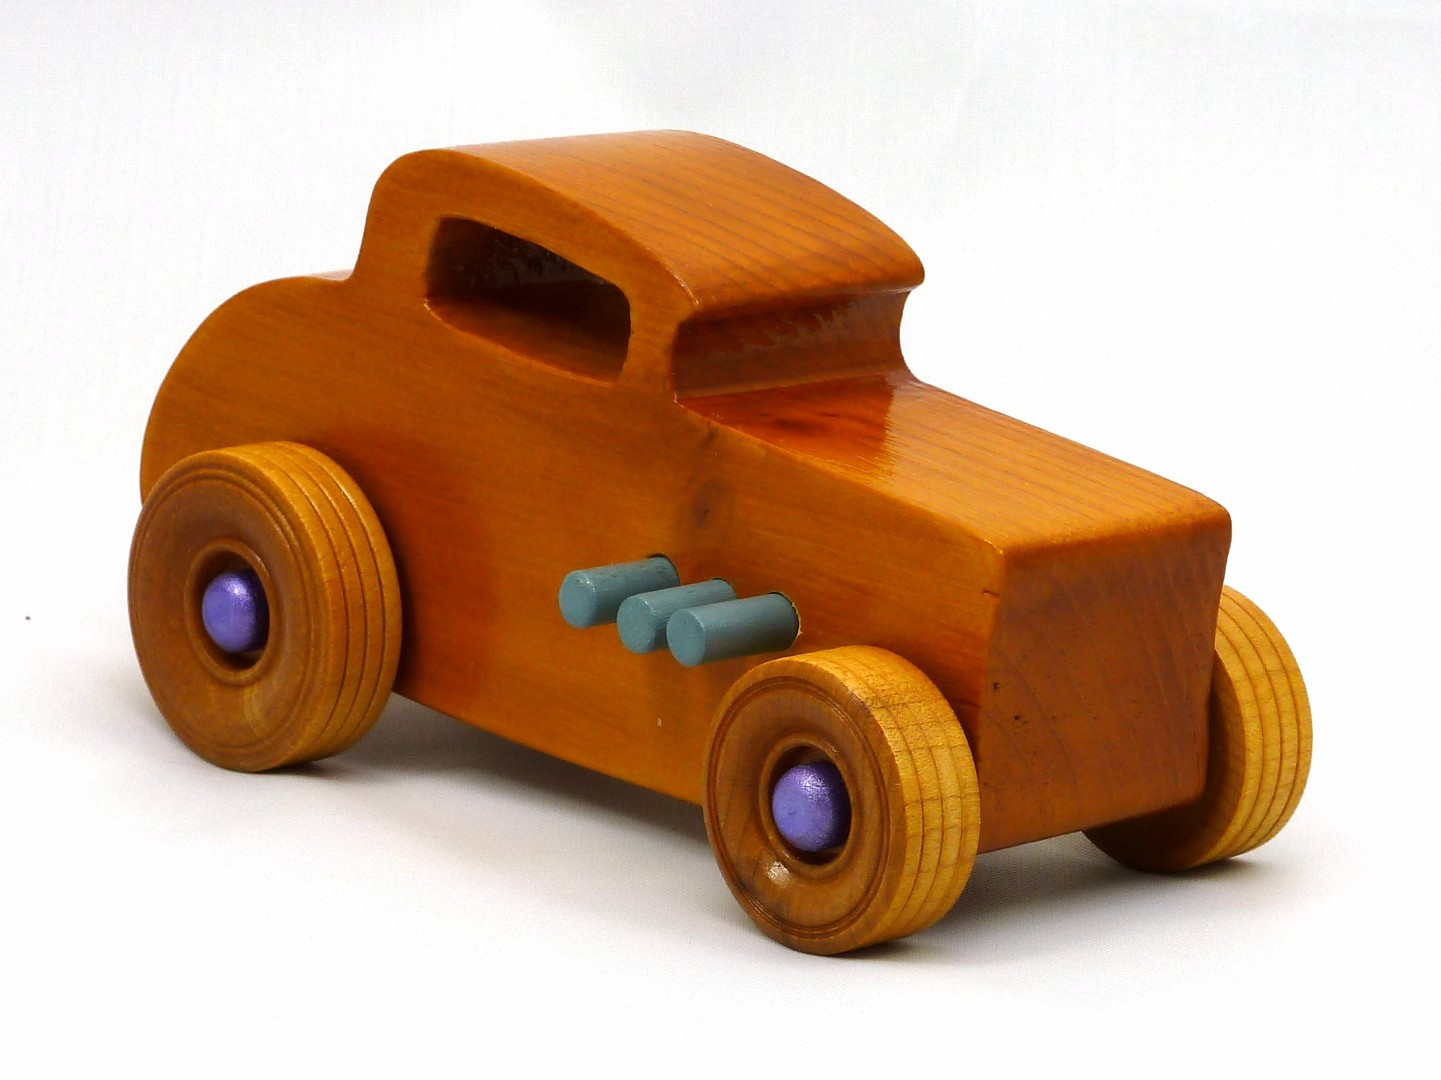 20170902-192407 Wooden Toy Car - Hot Rod Freaky Ford - 32 Deuce Coupe - Pine - Amber Shellac - Purple Metallic - Gray Exhaust.jpg